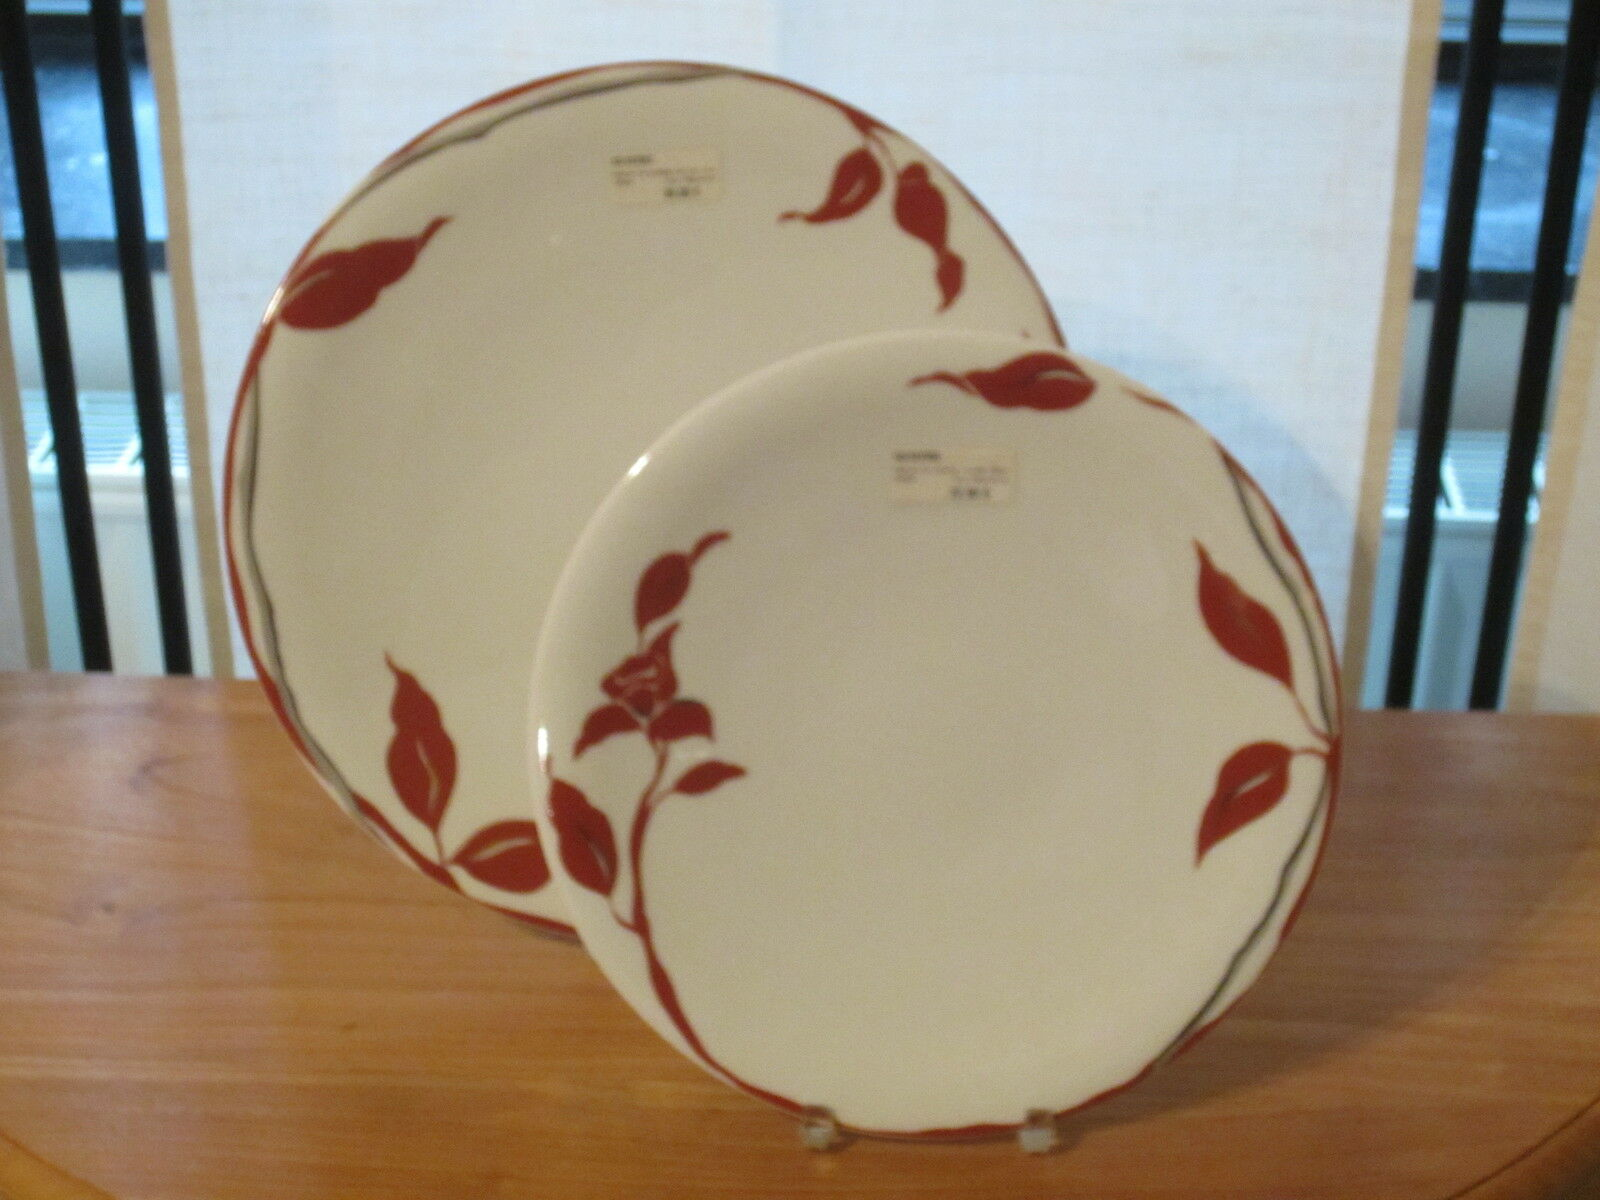 GUY DEGRENNE NEW TAHAA SAFRAN Set 2 Assiettes rondes Plates